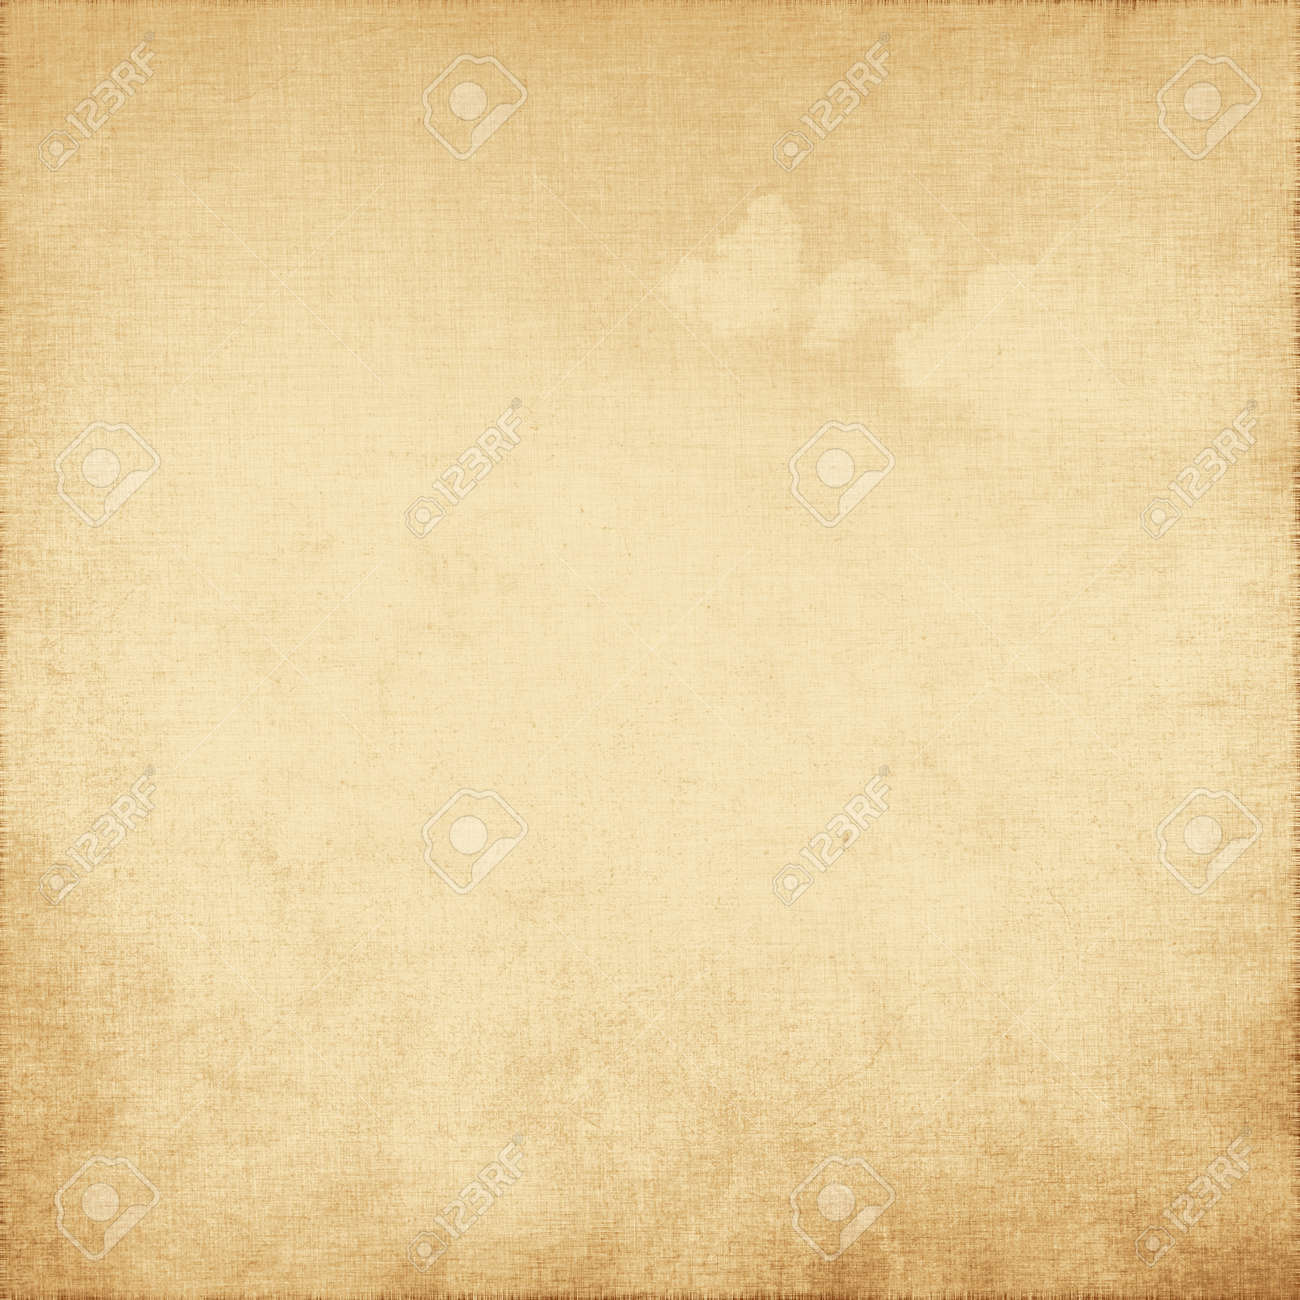 old canvas texture grunge background Stock Photo - 19796954